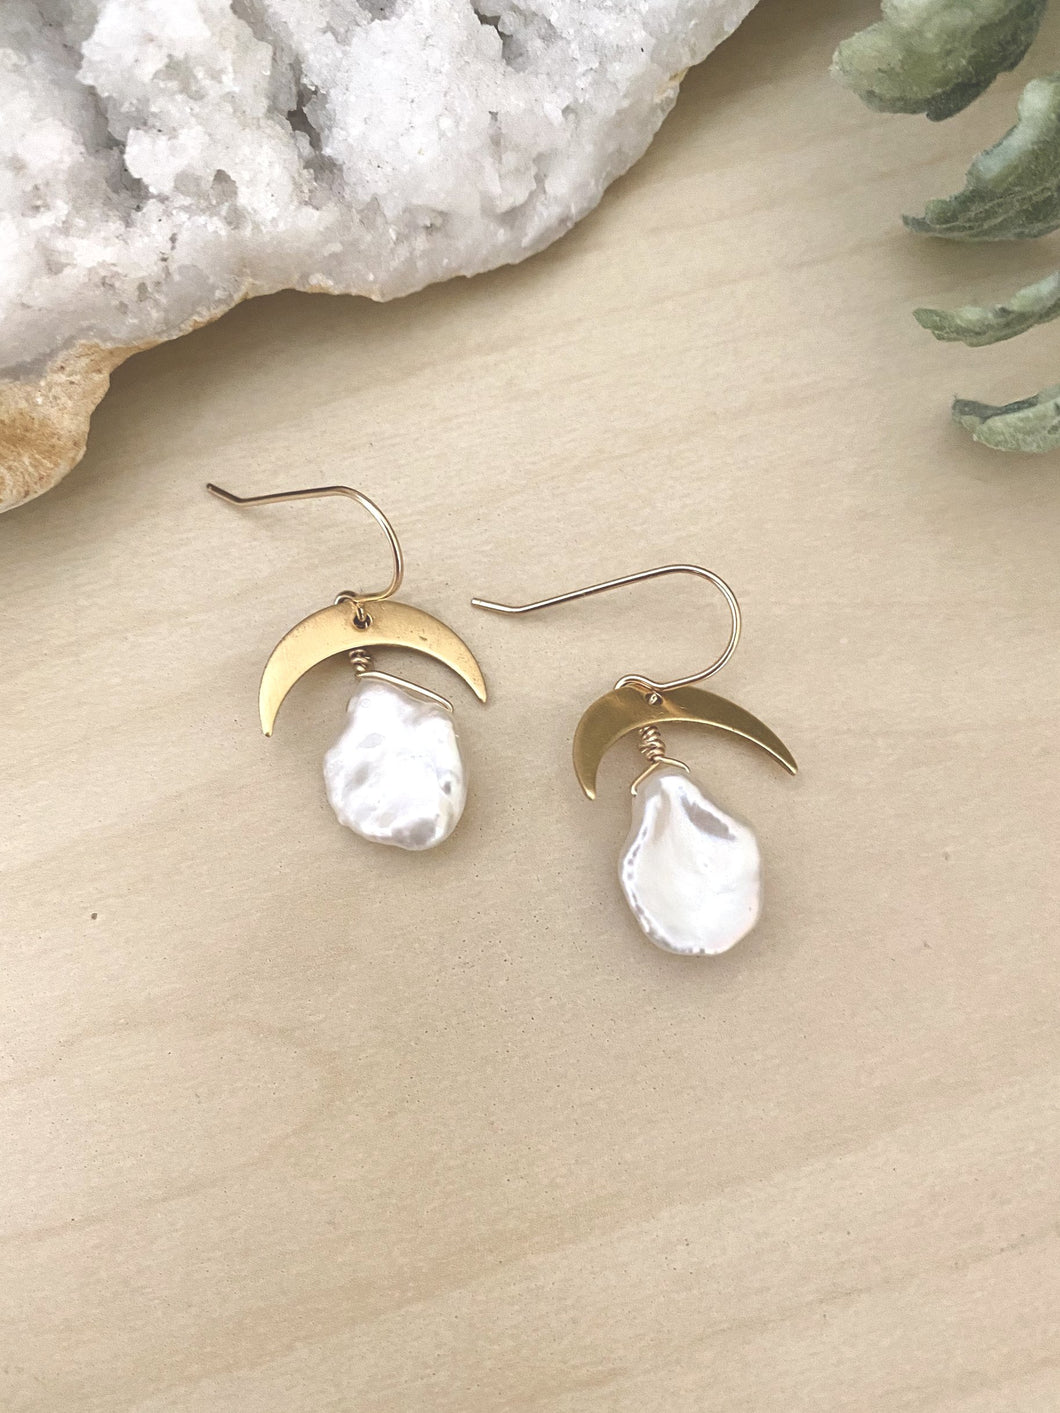 Pearl and gold crescent moon earrings - 14k gold filled ear wires